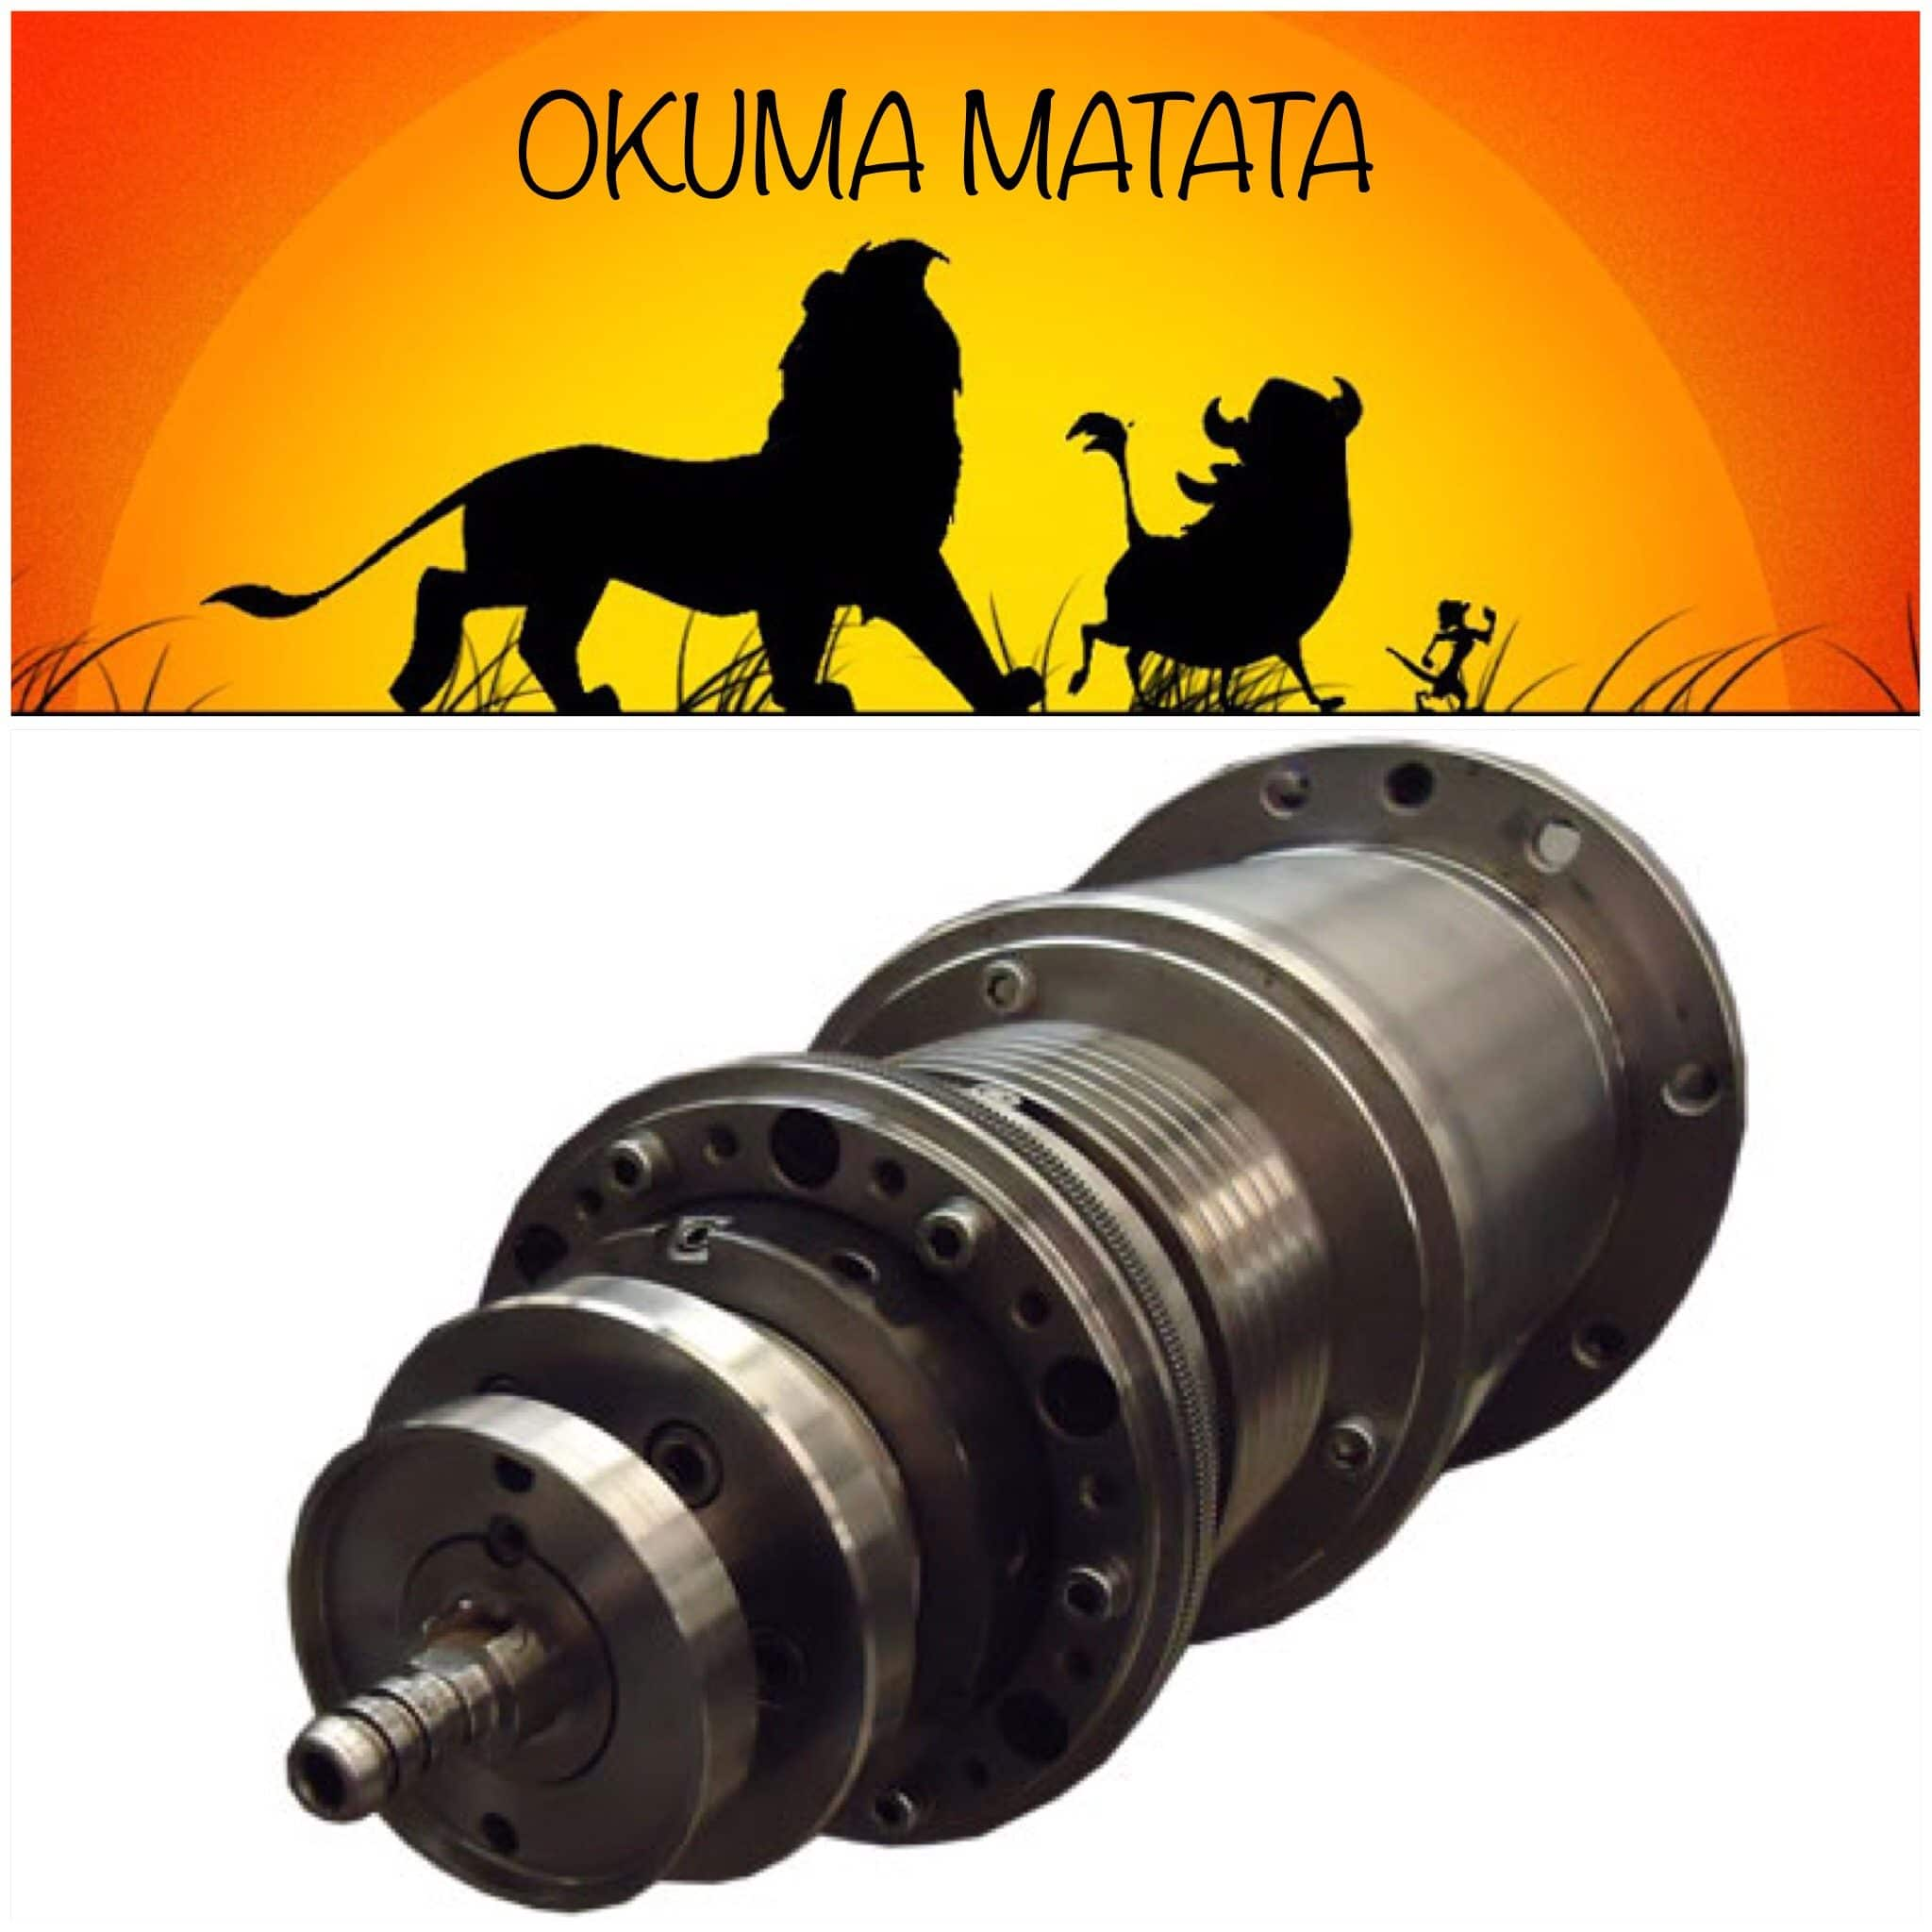 Okuma Spindle Repair Services